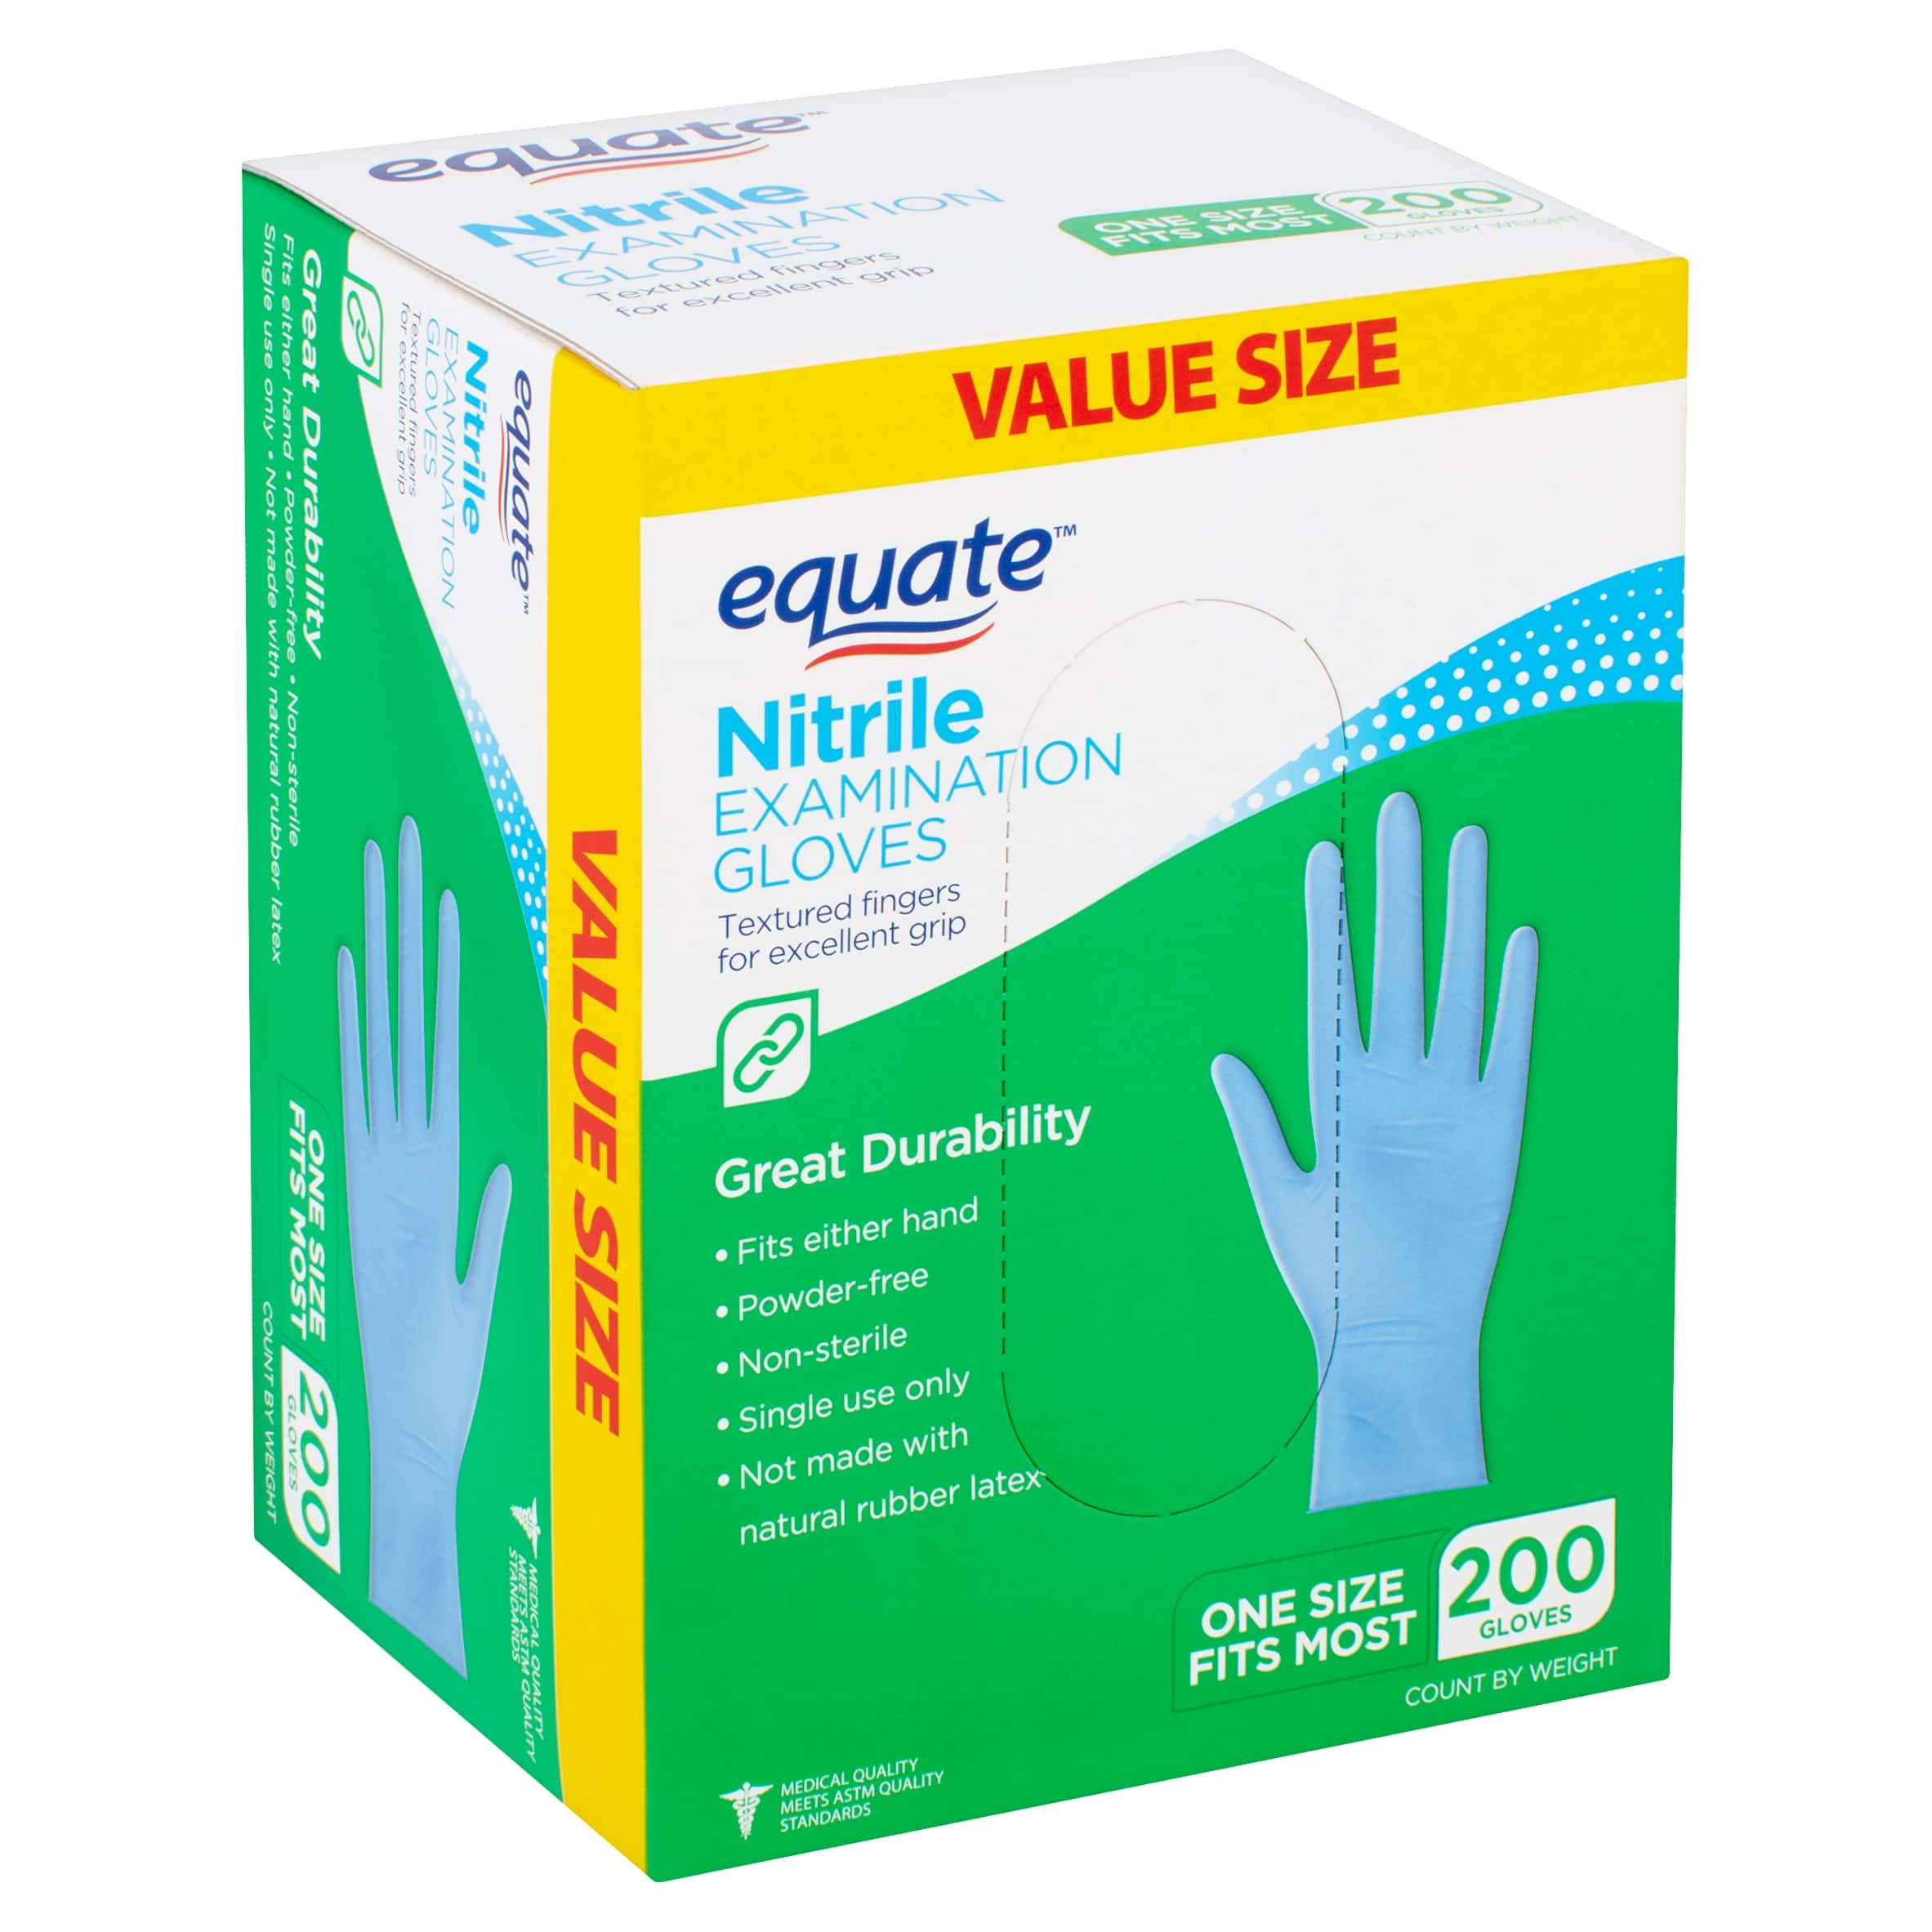 Nitrile Gloves 200 count at Walmart online - 11.98$